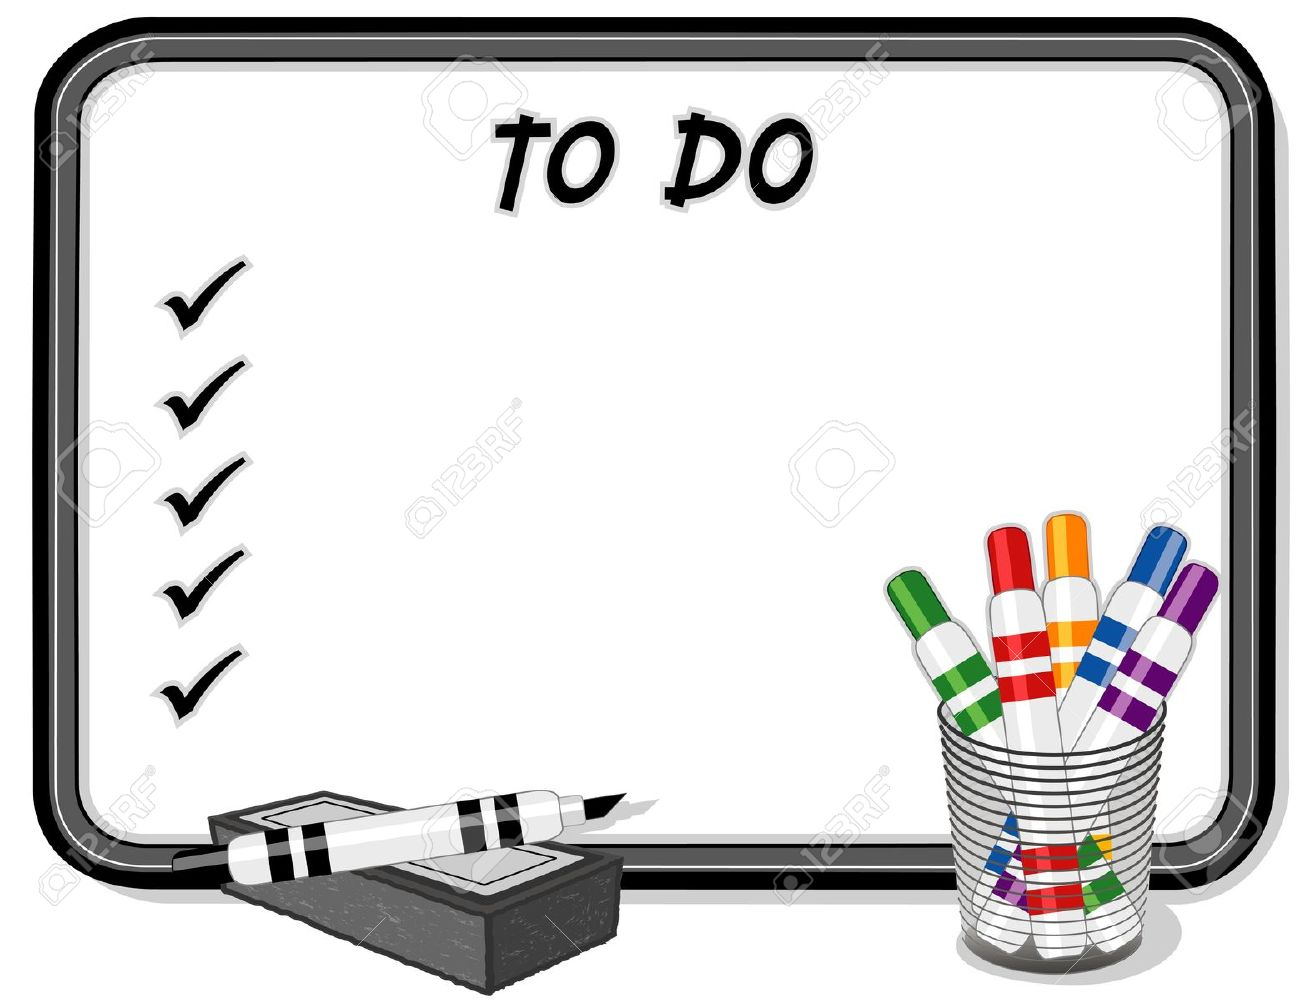 To do list clipart freeuse library To do list clipart free - ClipartFest freeuse library